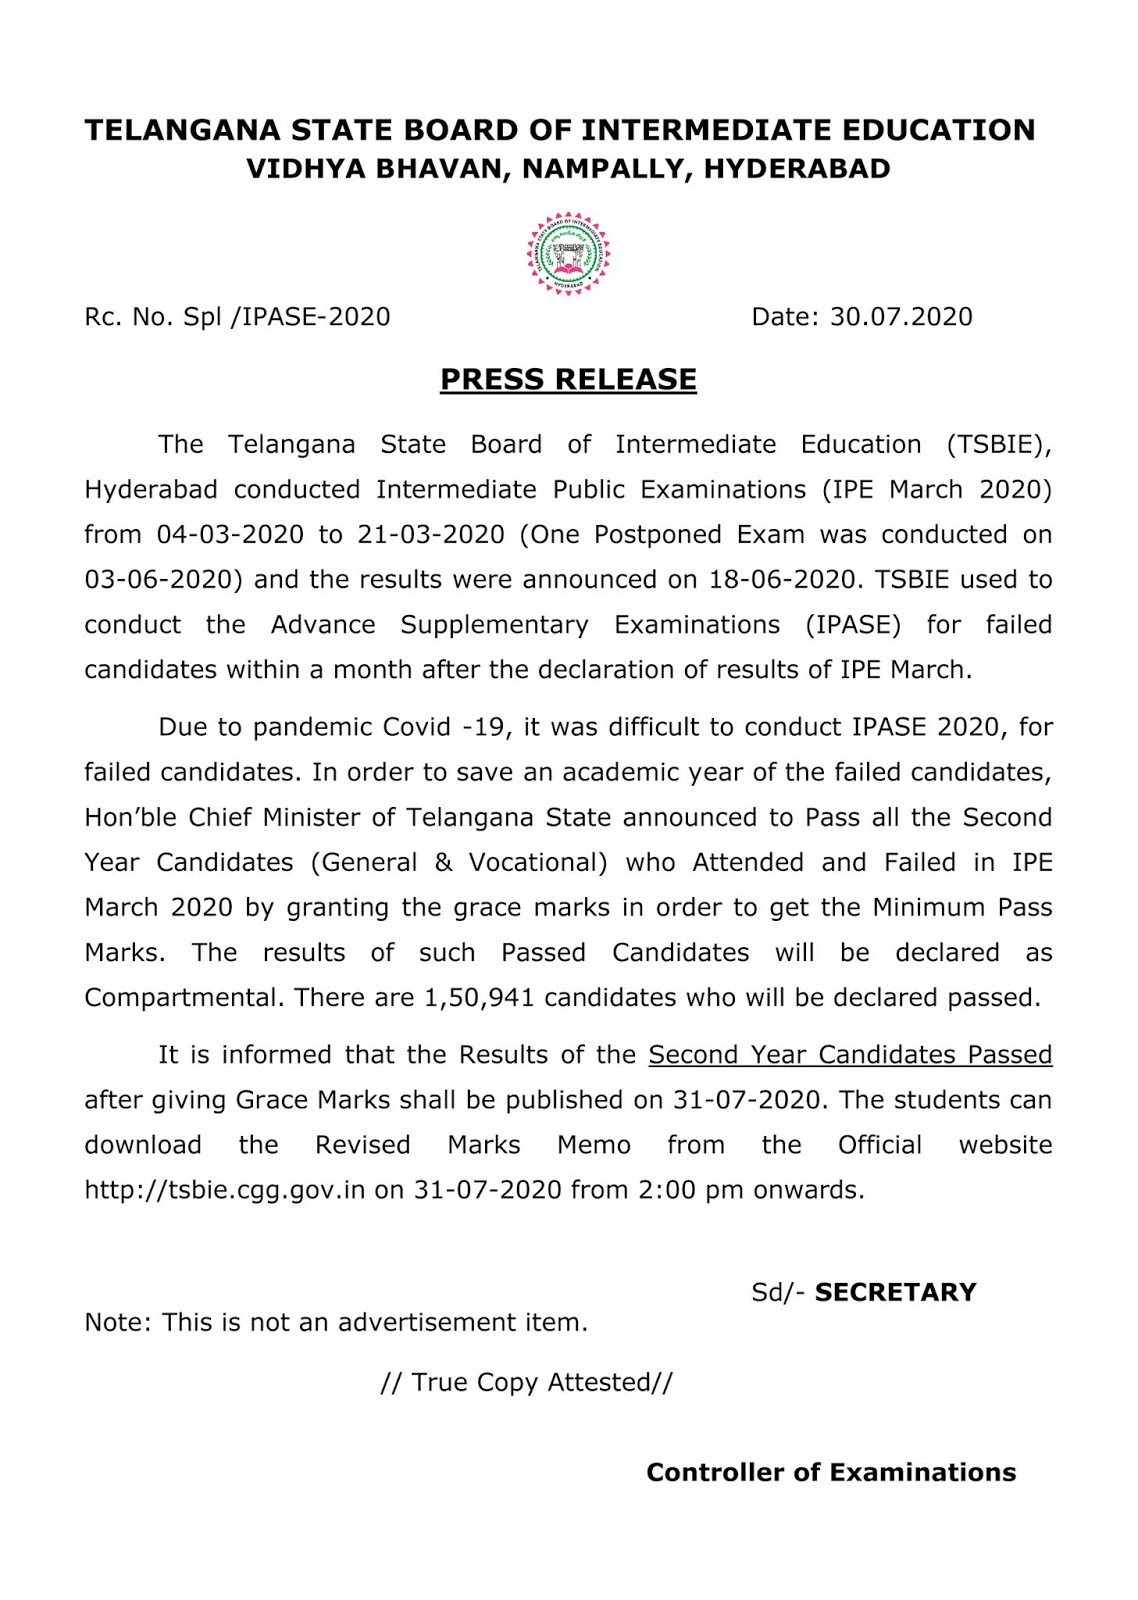 Telangana Intermediate Board Results of the 2nd Year Candidates Grace Marks Notification